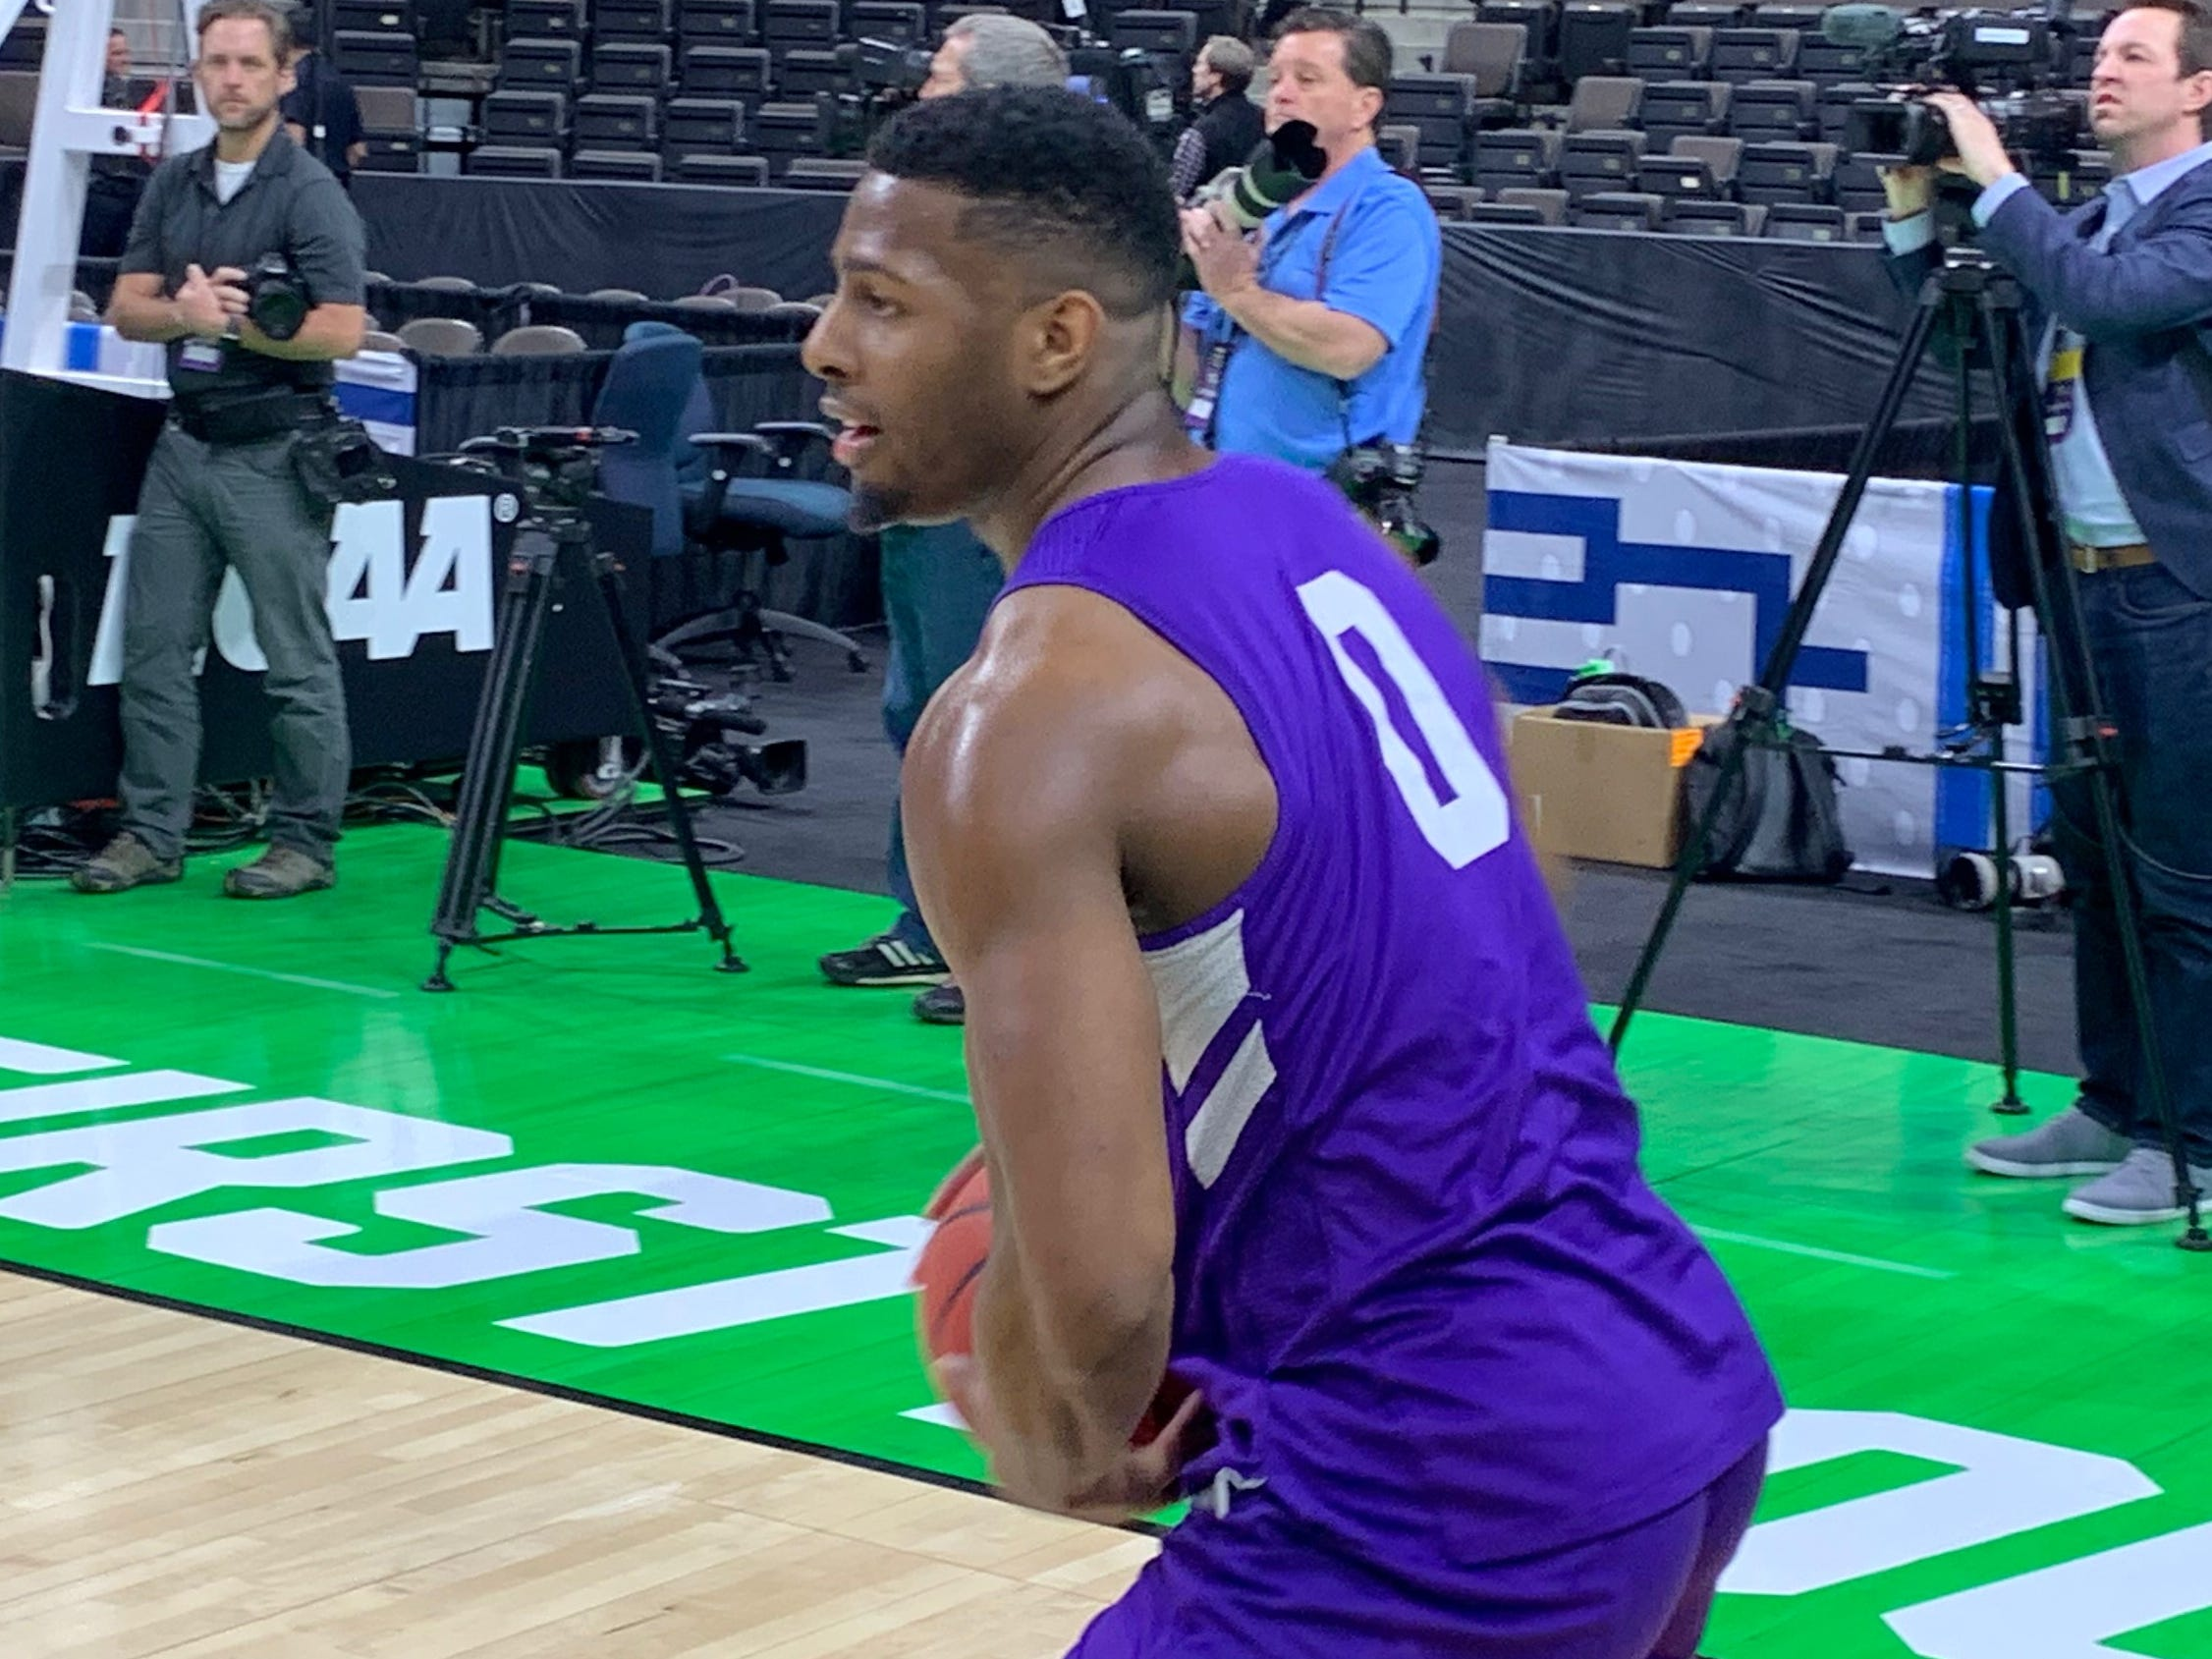 Abilene Christian's Jaylen Franklin (0) turns to make a pass during practice at VyStar Veterans Memorial Arena in Jacksonville on Wednesday, March 20. ACU plays Kentucky in the NCAA Tournament first round on Thursday night.